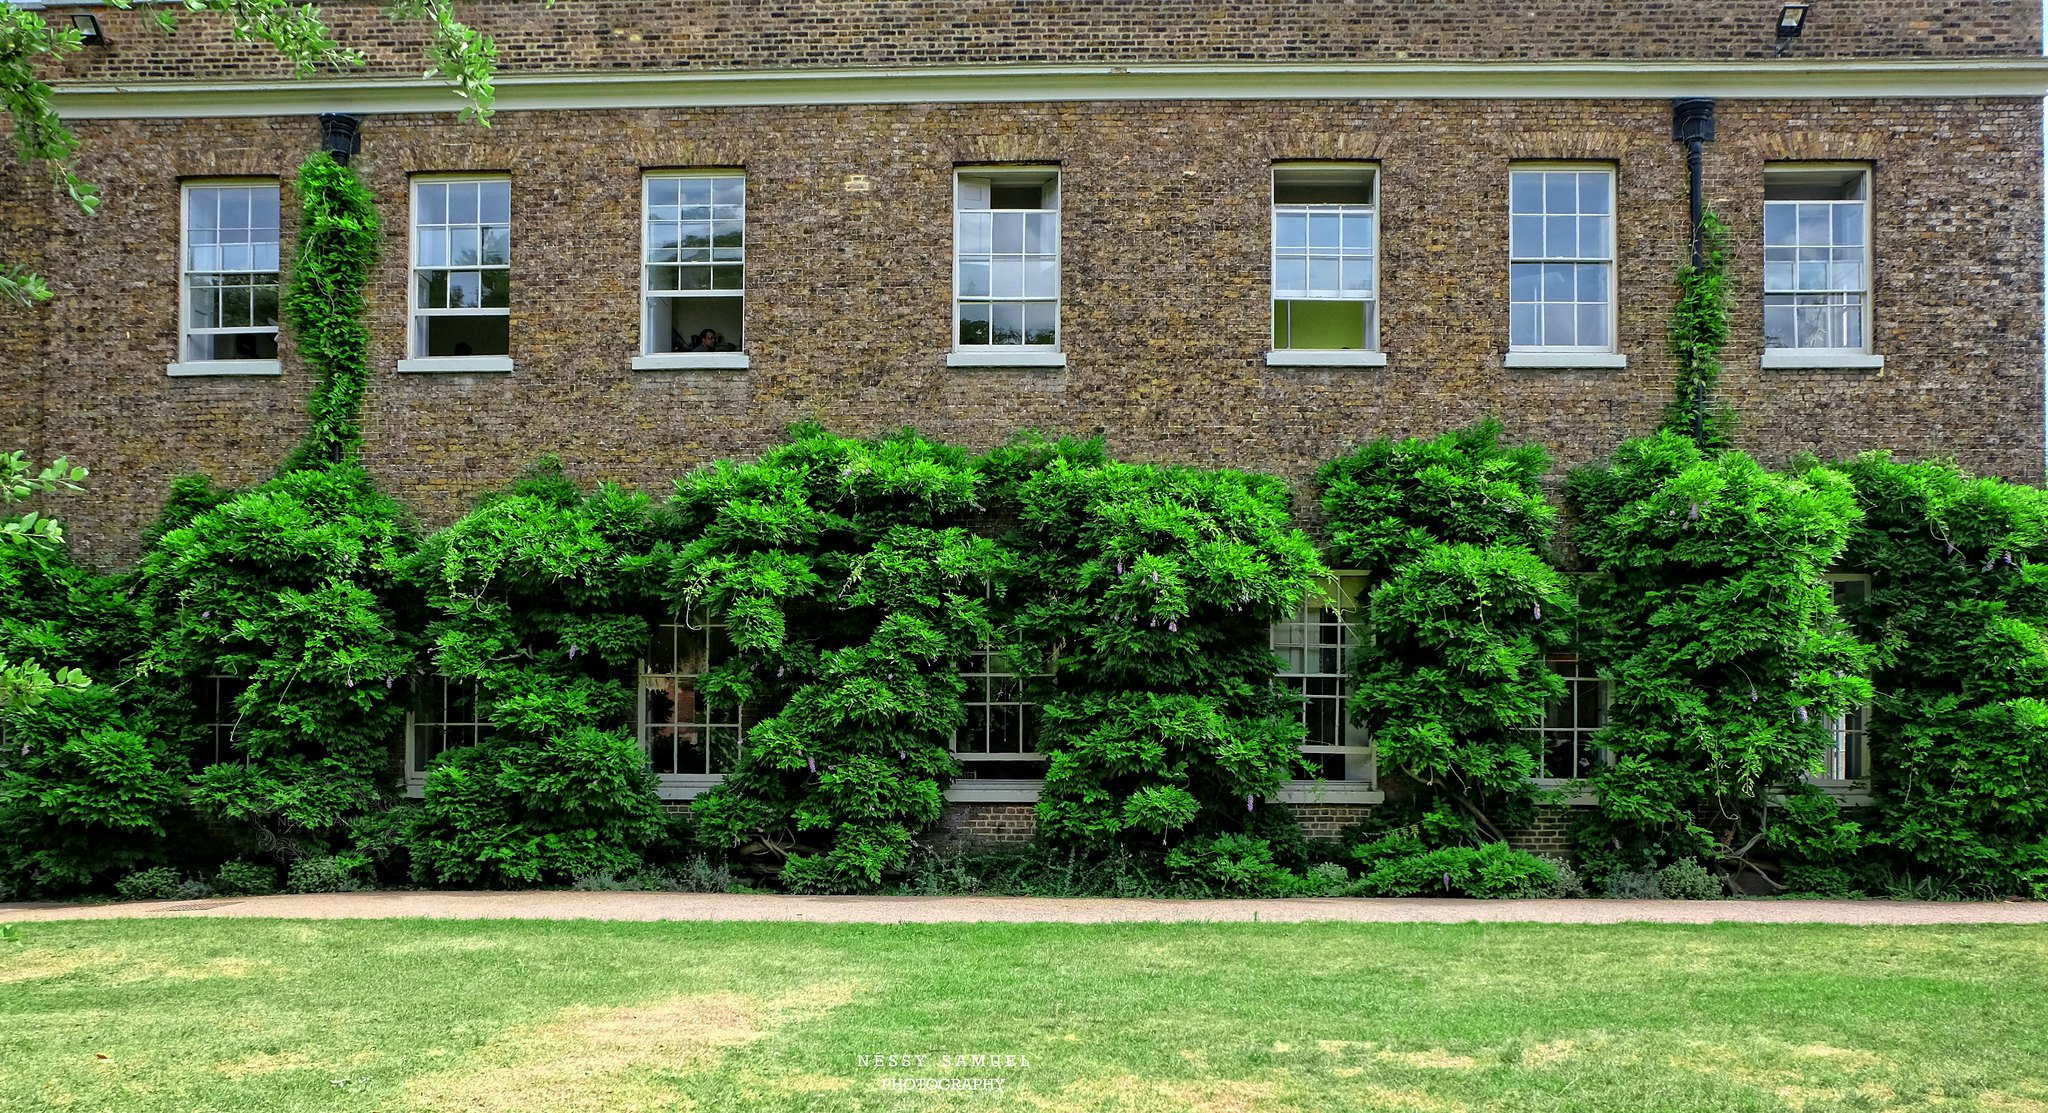 Fulham Palace and Hidden Walled Garden